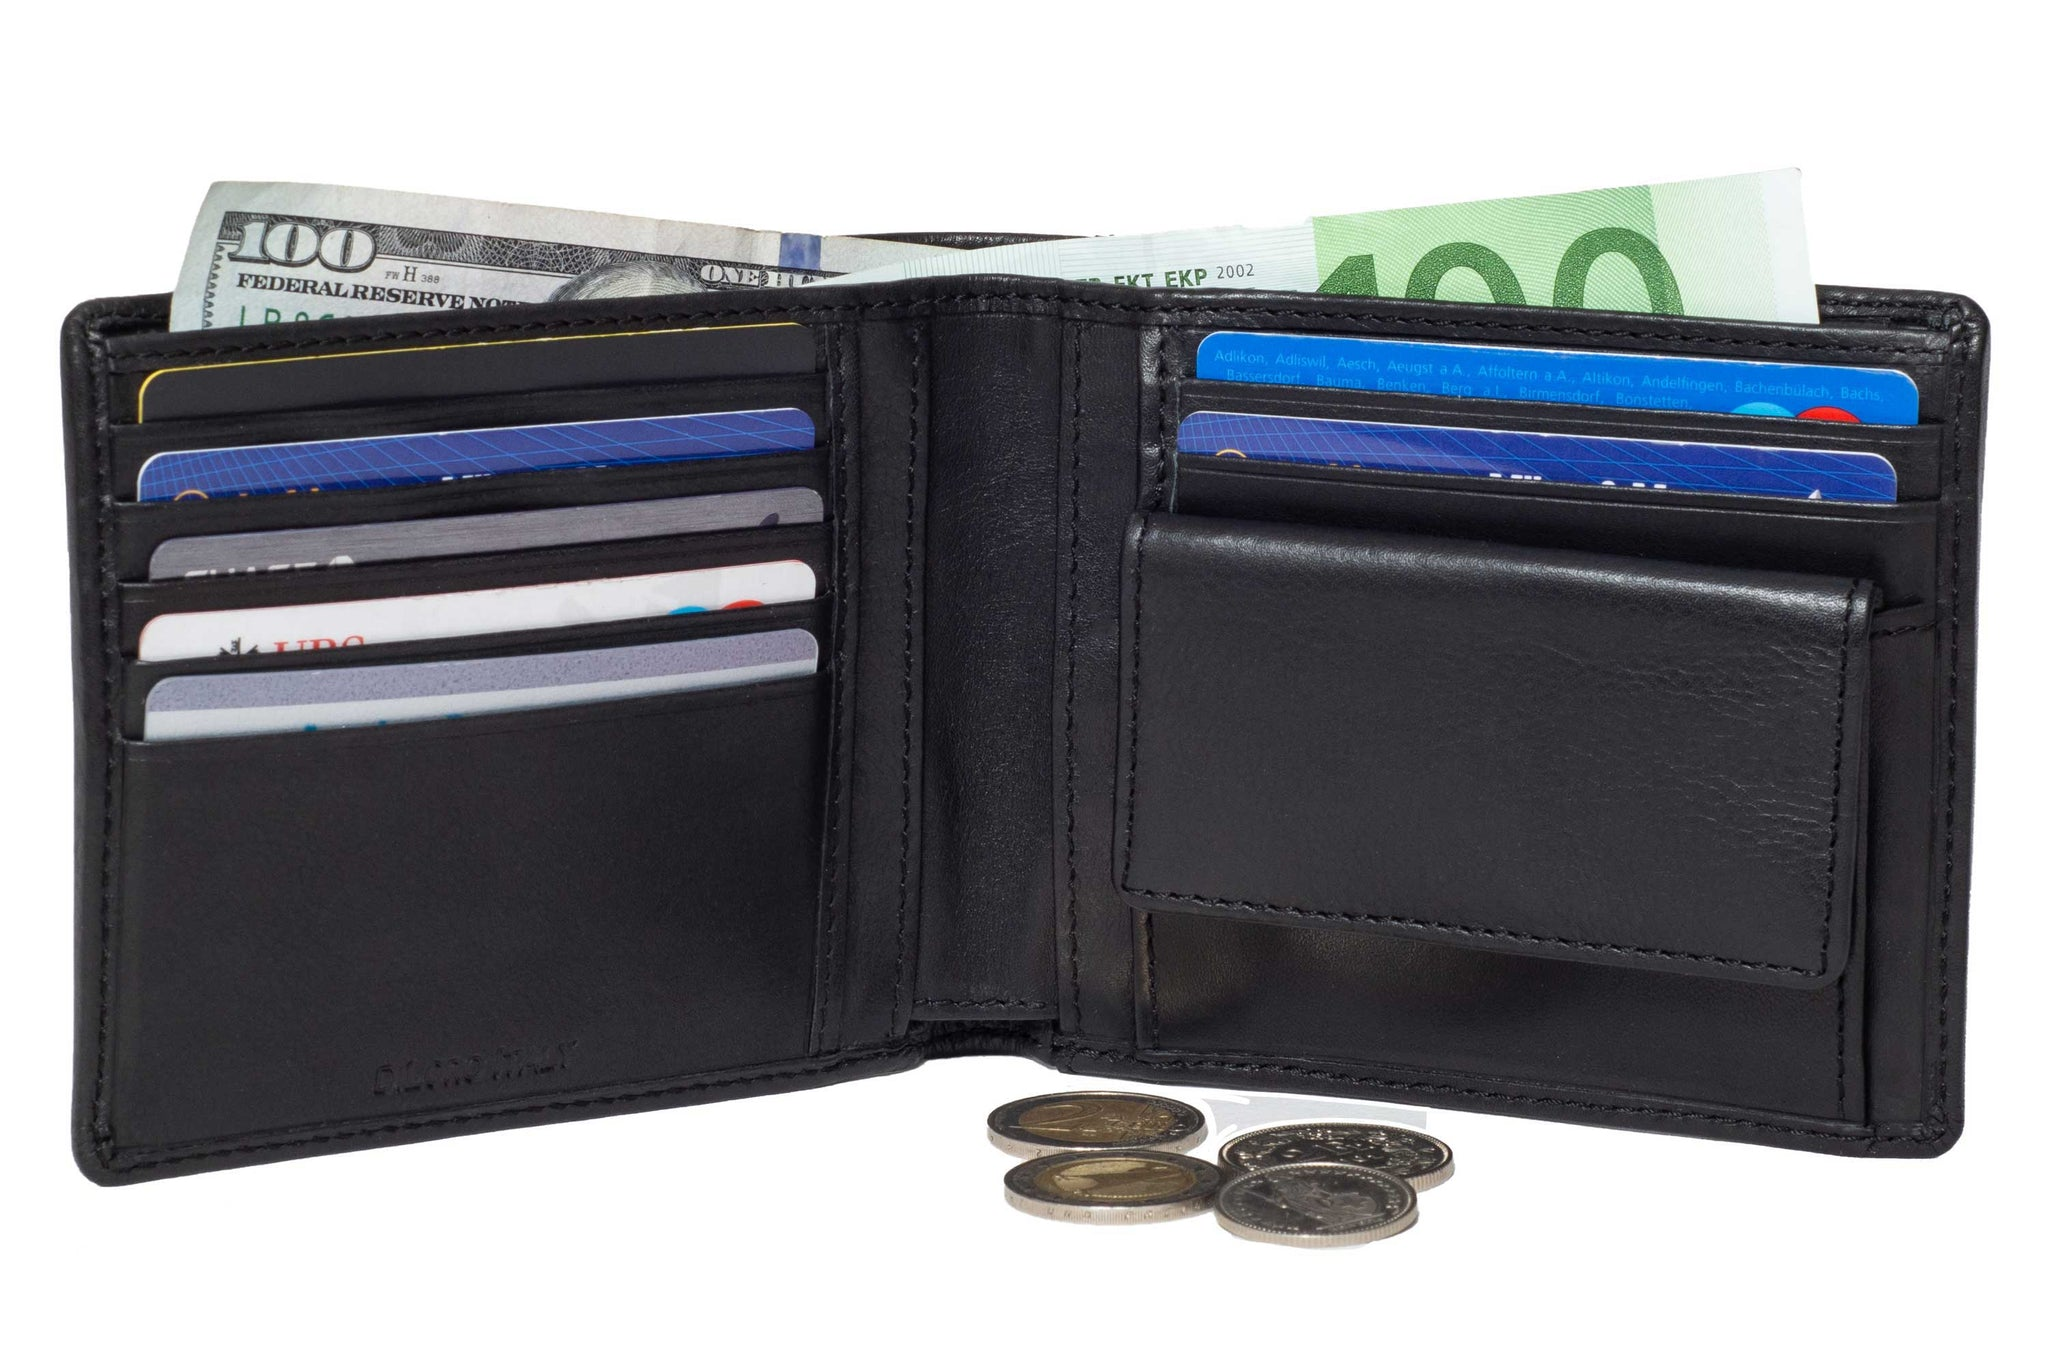 DiLoro Leather Bifold Wallet with Back Slip Pocket, Coin Section and RFID Protection - Open View